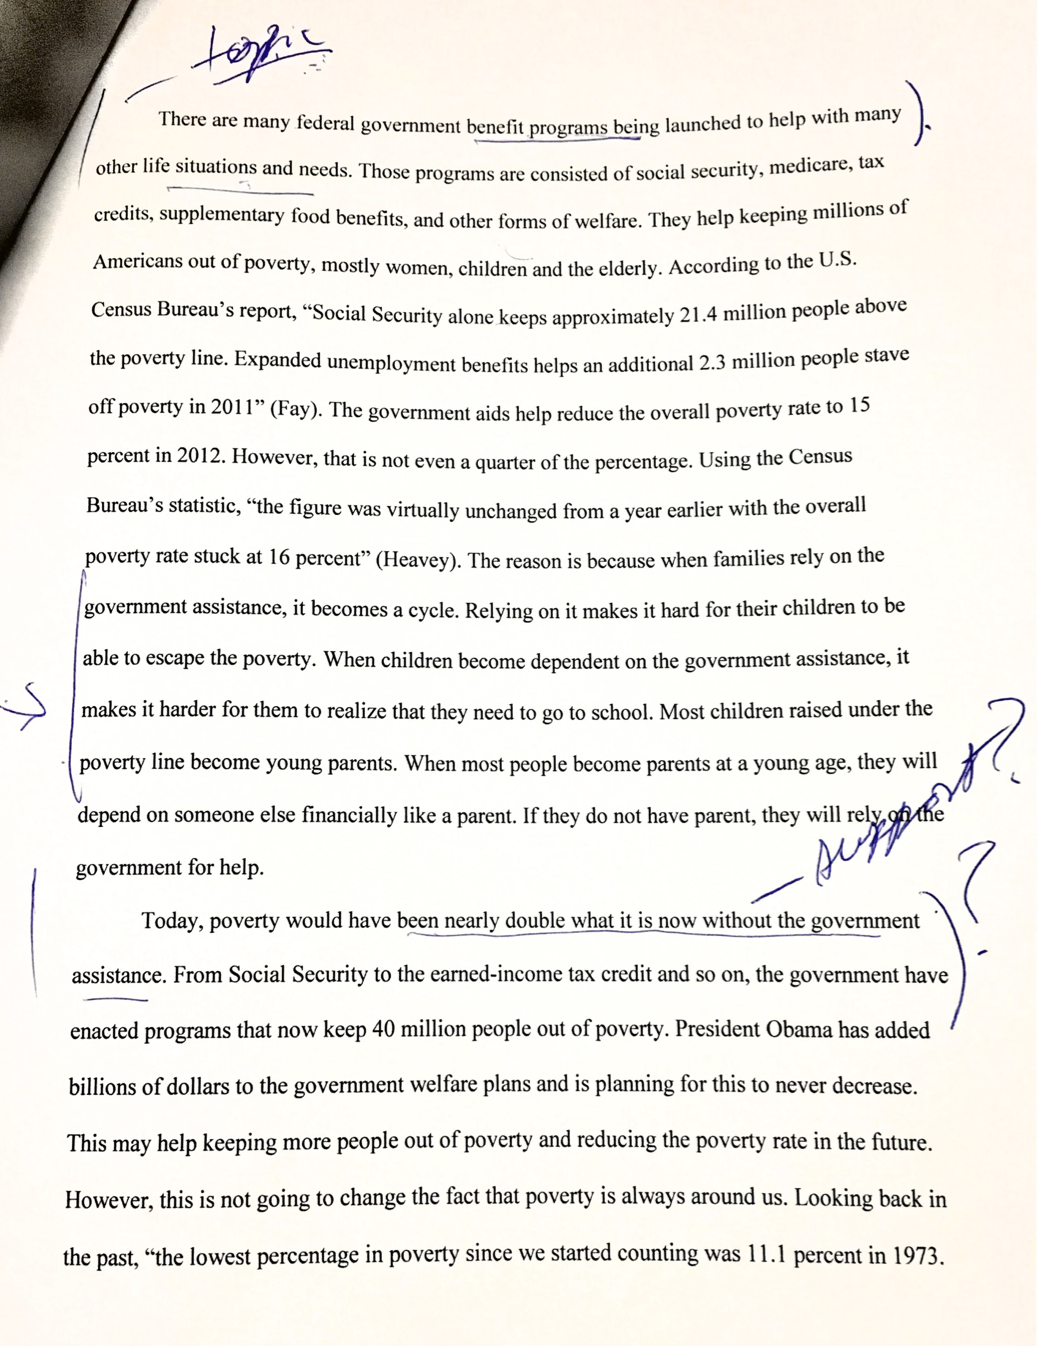 022 Essay Example How To Write Claim For An Argumentative Can Someone Please Help Me Rewrite Or Fix Those Mistakes On My Frightening A Good Rebuttal In Full